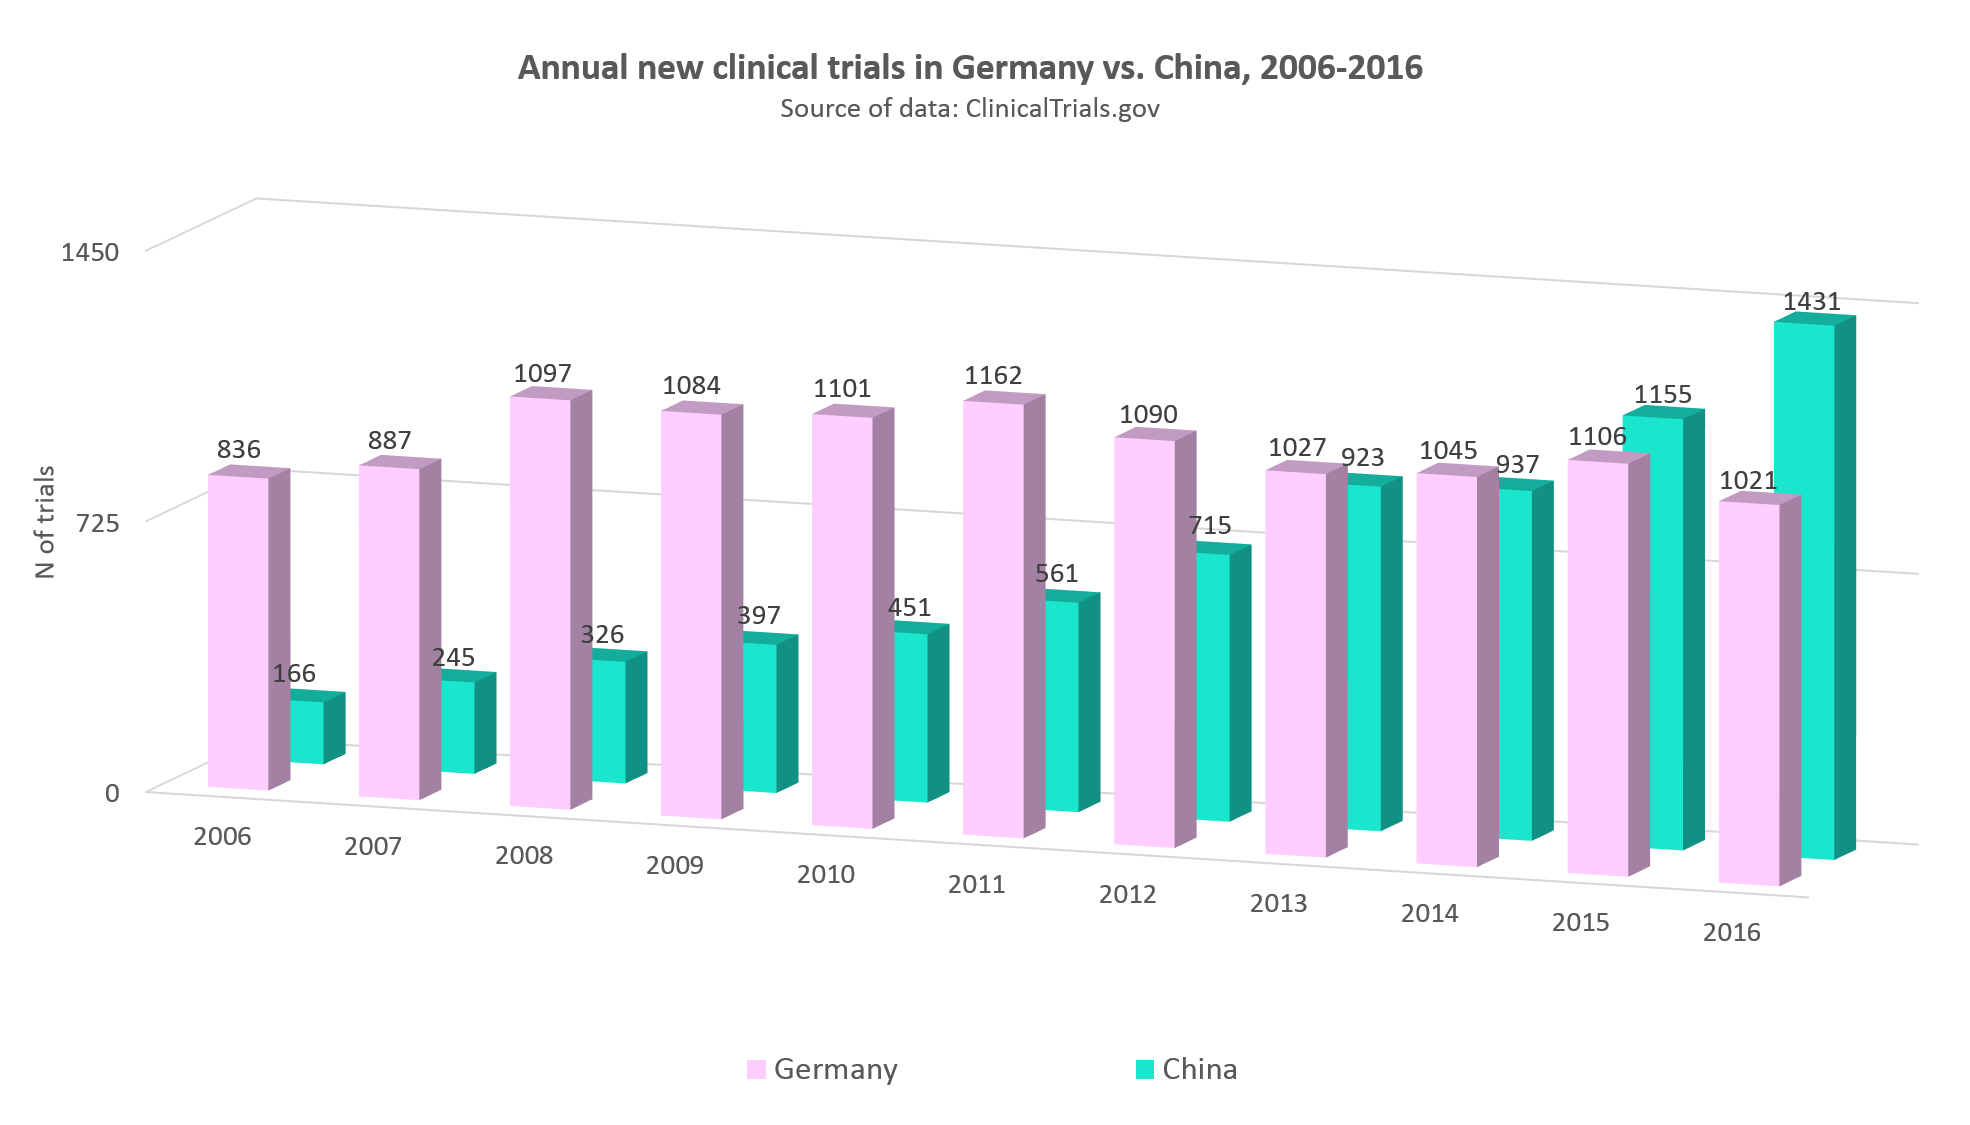 Annual statistics of clinical trials in Germany vs. China, 2006-2016